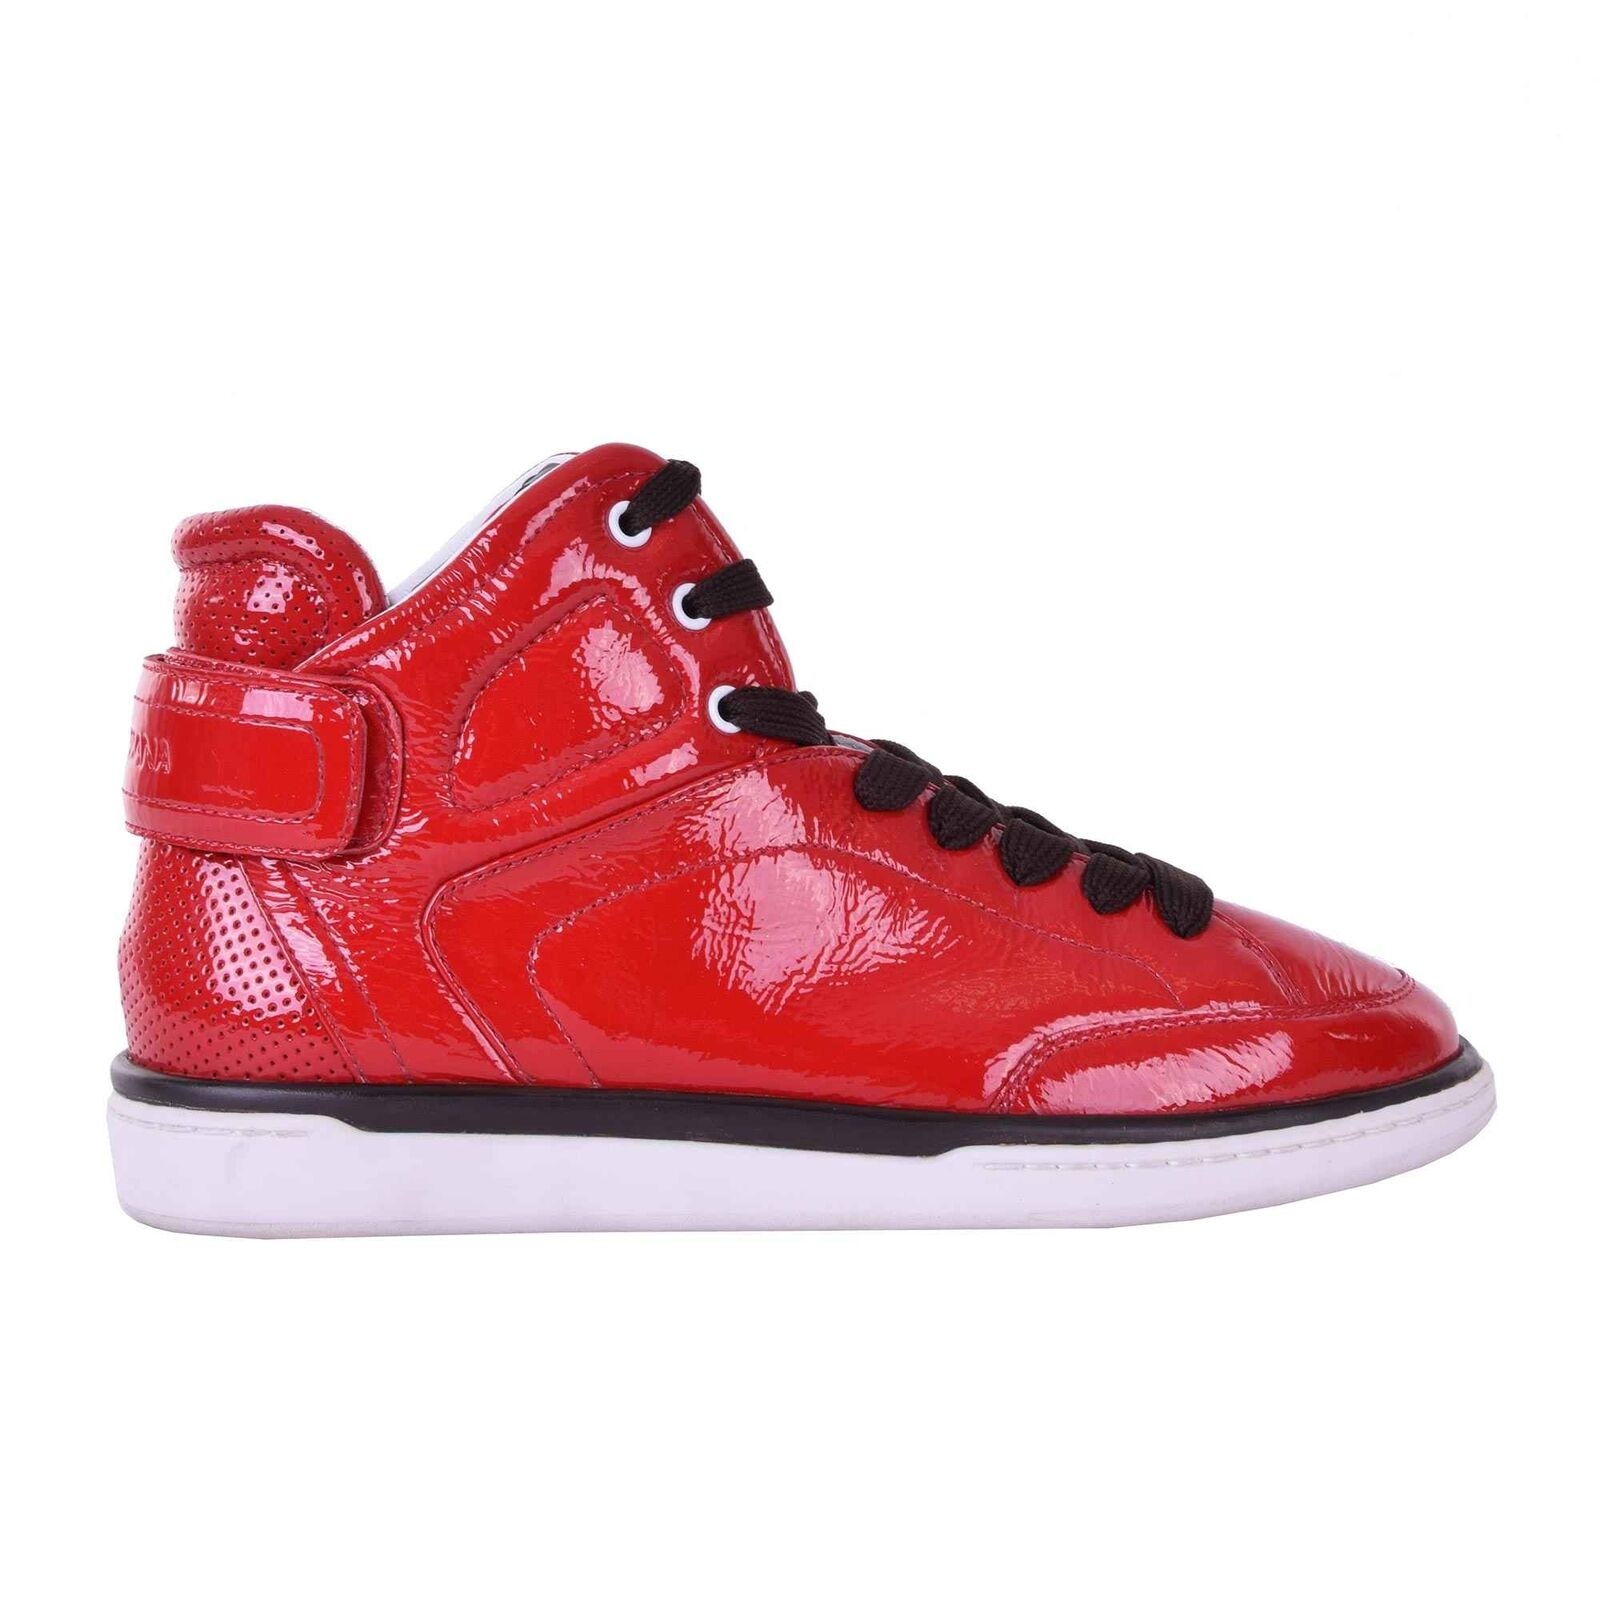 Scarpe casual da uomo  DOLCE & GABBANA High-Top Patent Leather Sneaker Sneakers Shoes USLER Red 05922